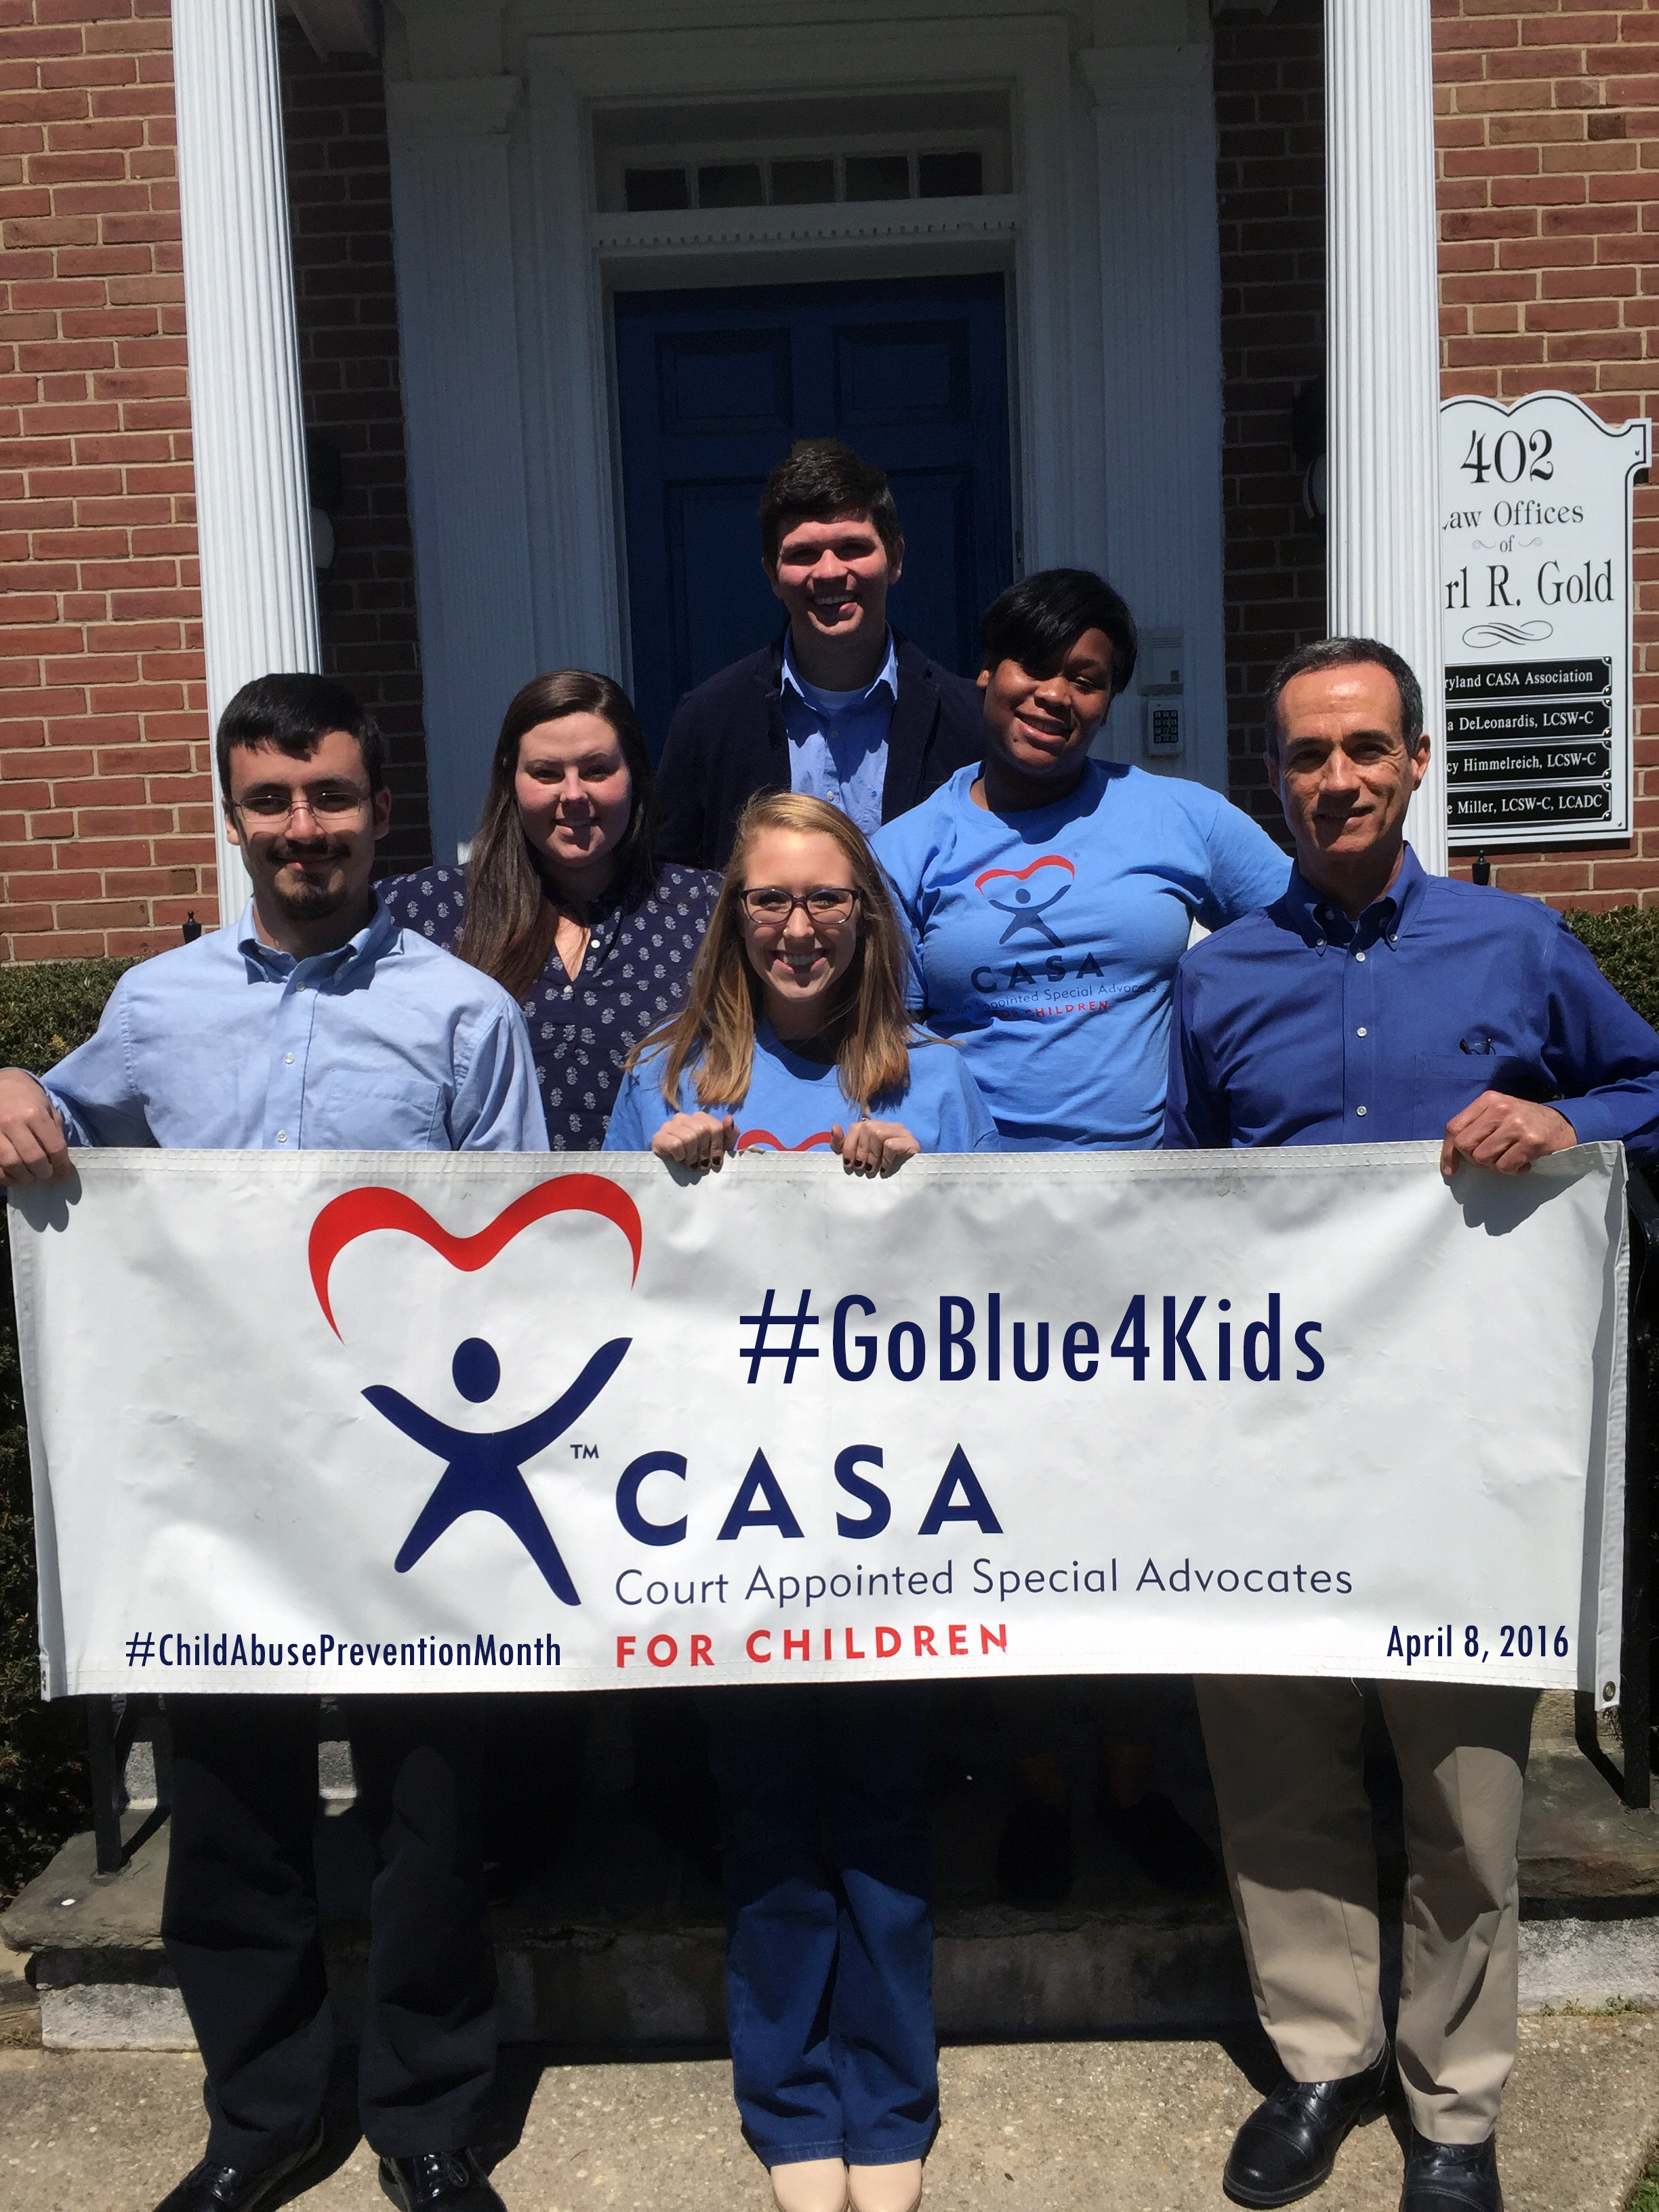 Front Row (L to R): Adam Falzarano, Intern, Mary Kittleman, Intern, Ed Kilcullen, MD CASA State Director. Back Row (L to R): Kendal Braun, Administrative & Training Coordinator, Stacey Jerome, Intern, Patrick Seidl, Development & Communications Associate.